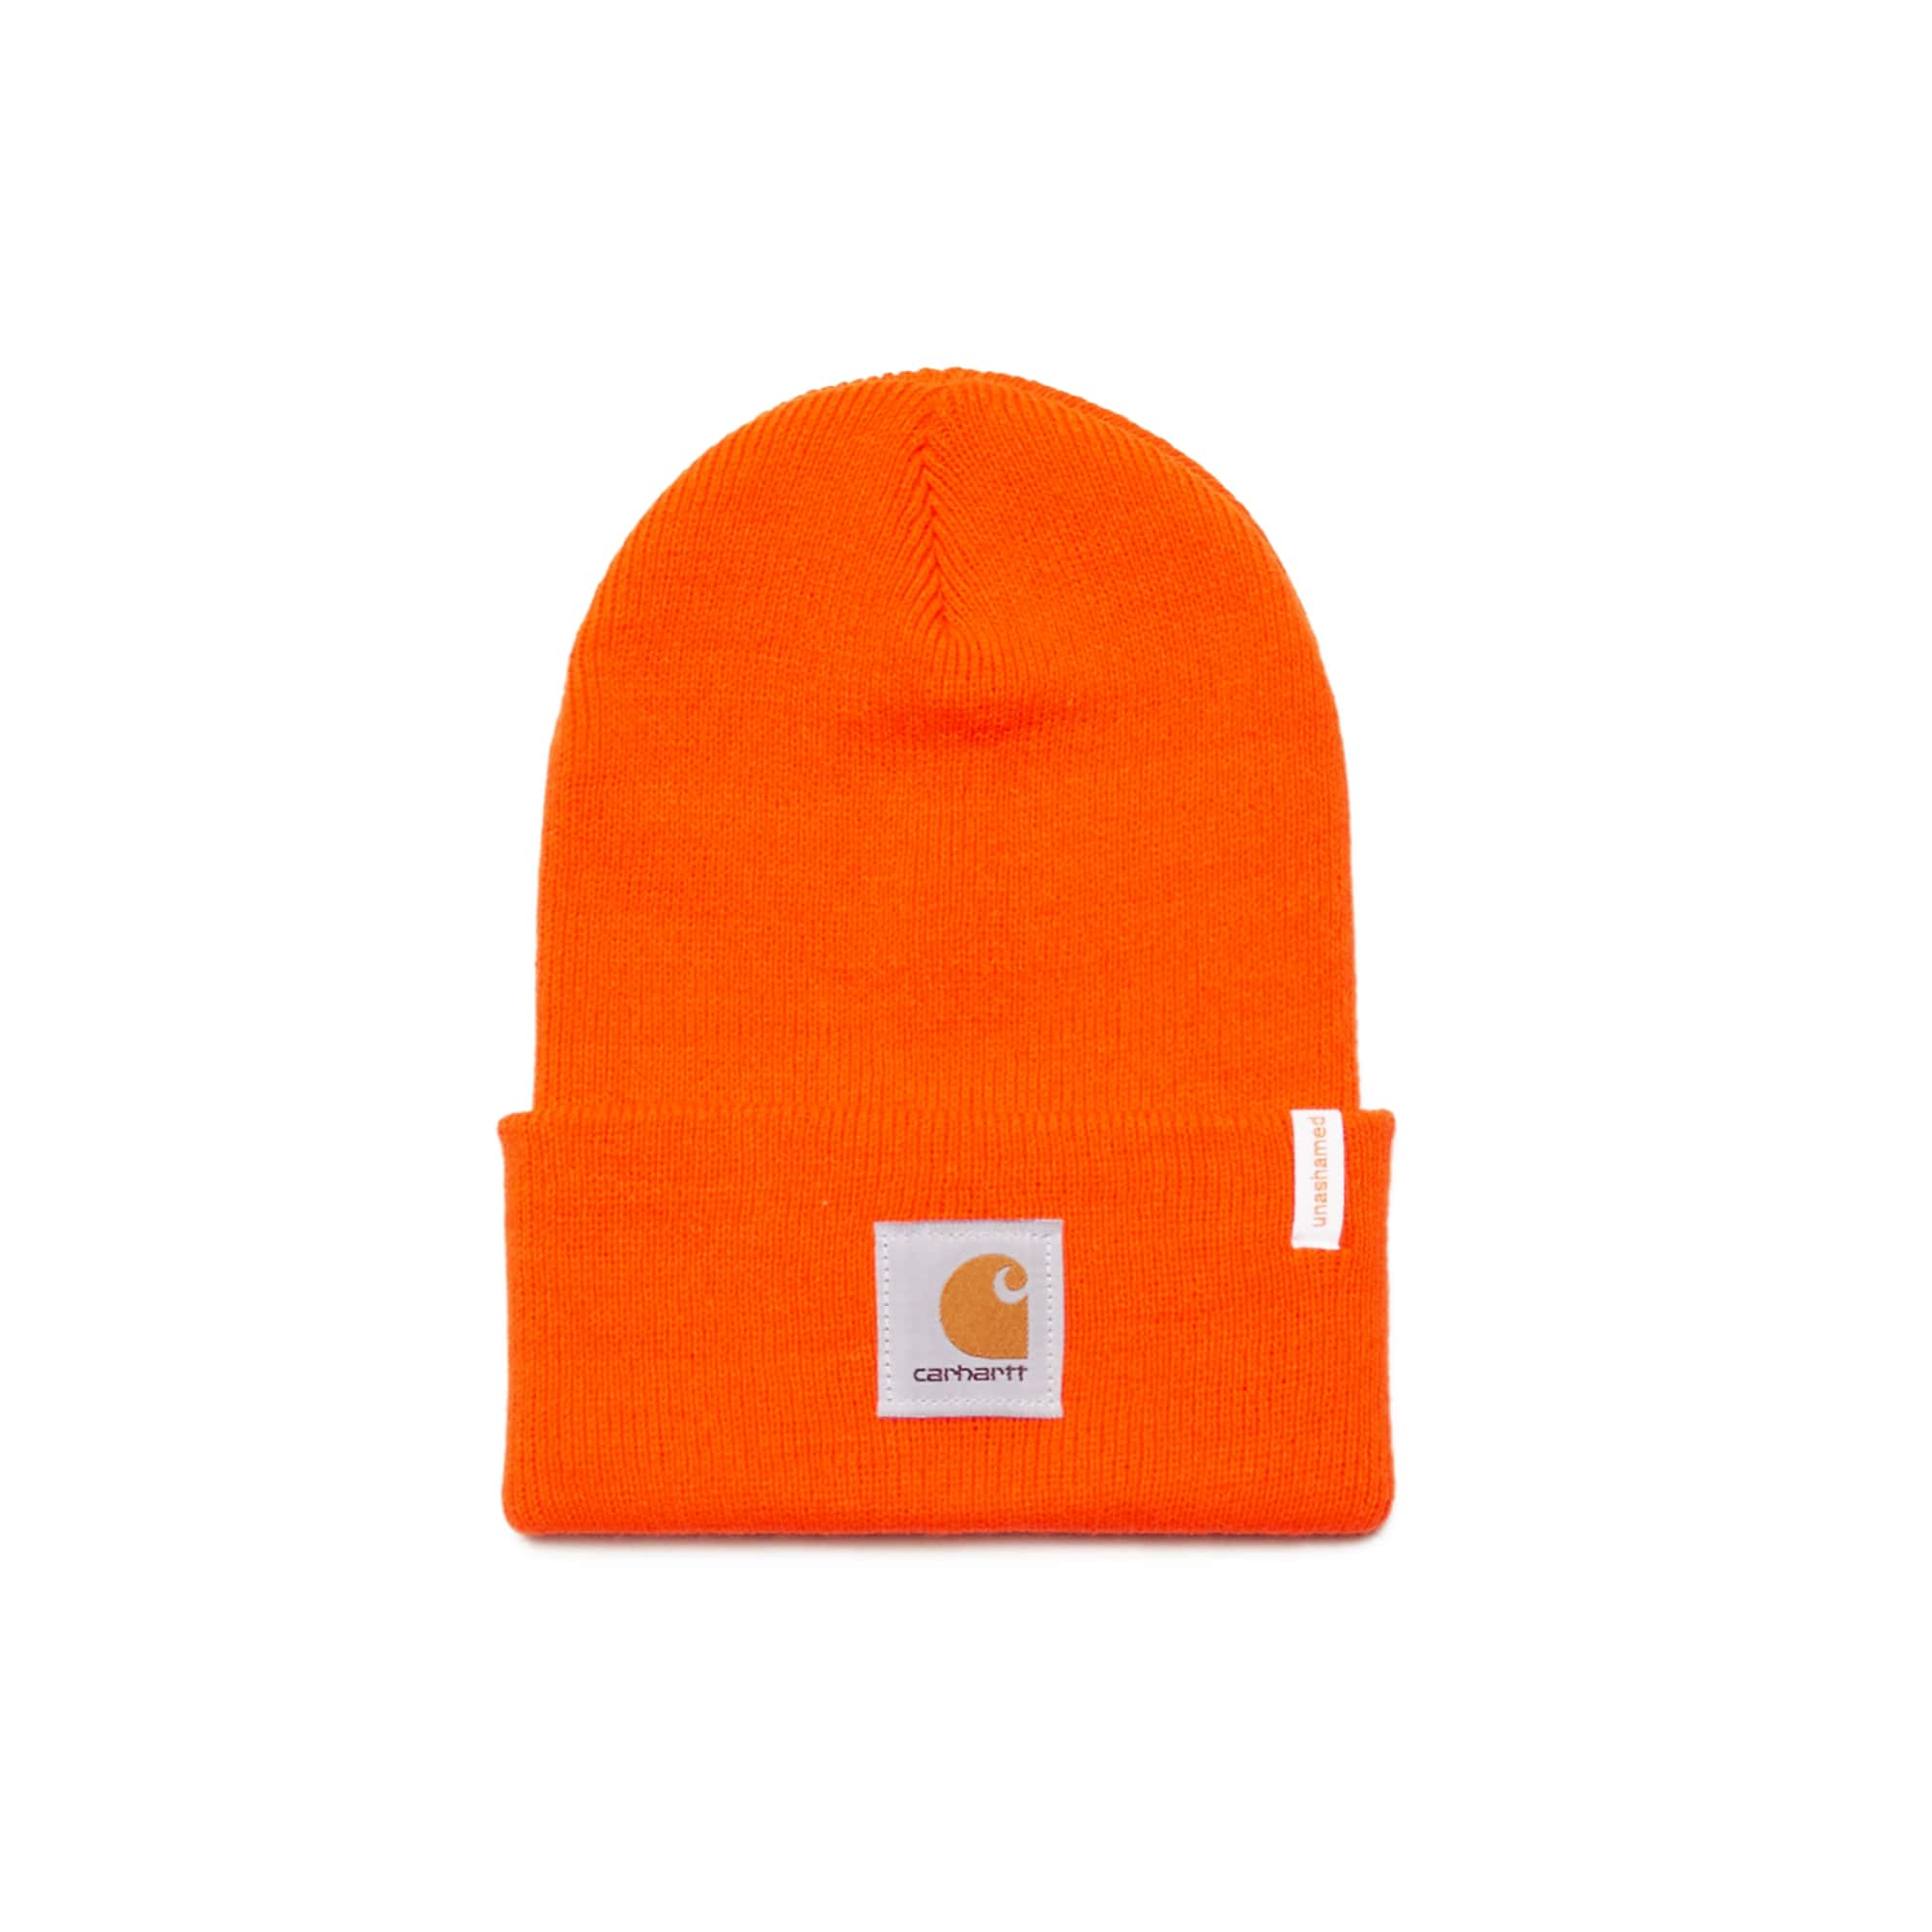 Lecrae x Carhartt 'Unashamed' Beanie - Orange